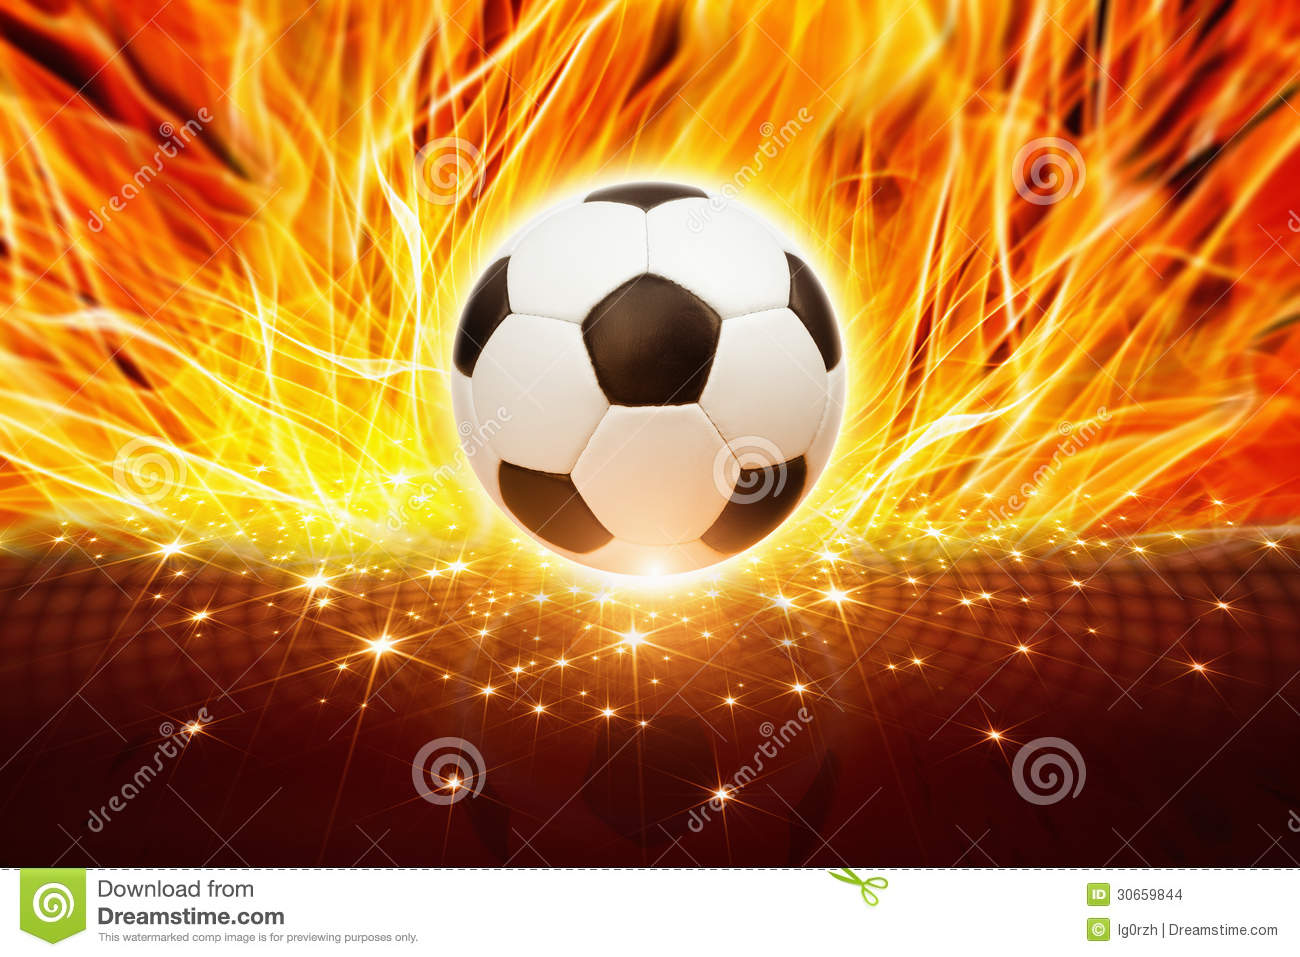 The Ball On Fire Soccer Football Sports Qhd Wallpaper 2: Soccer Ball In Fire Stock Photo. Image Of Celebration